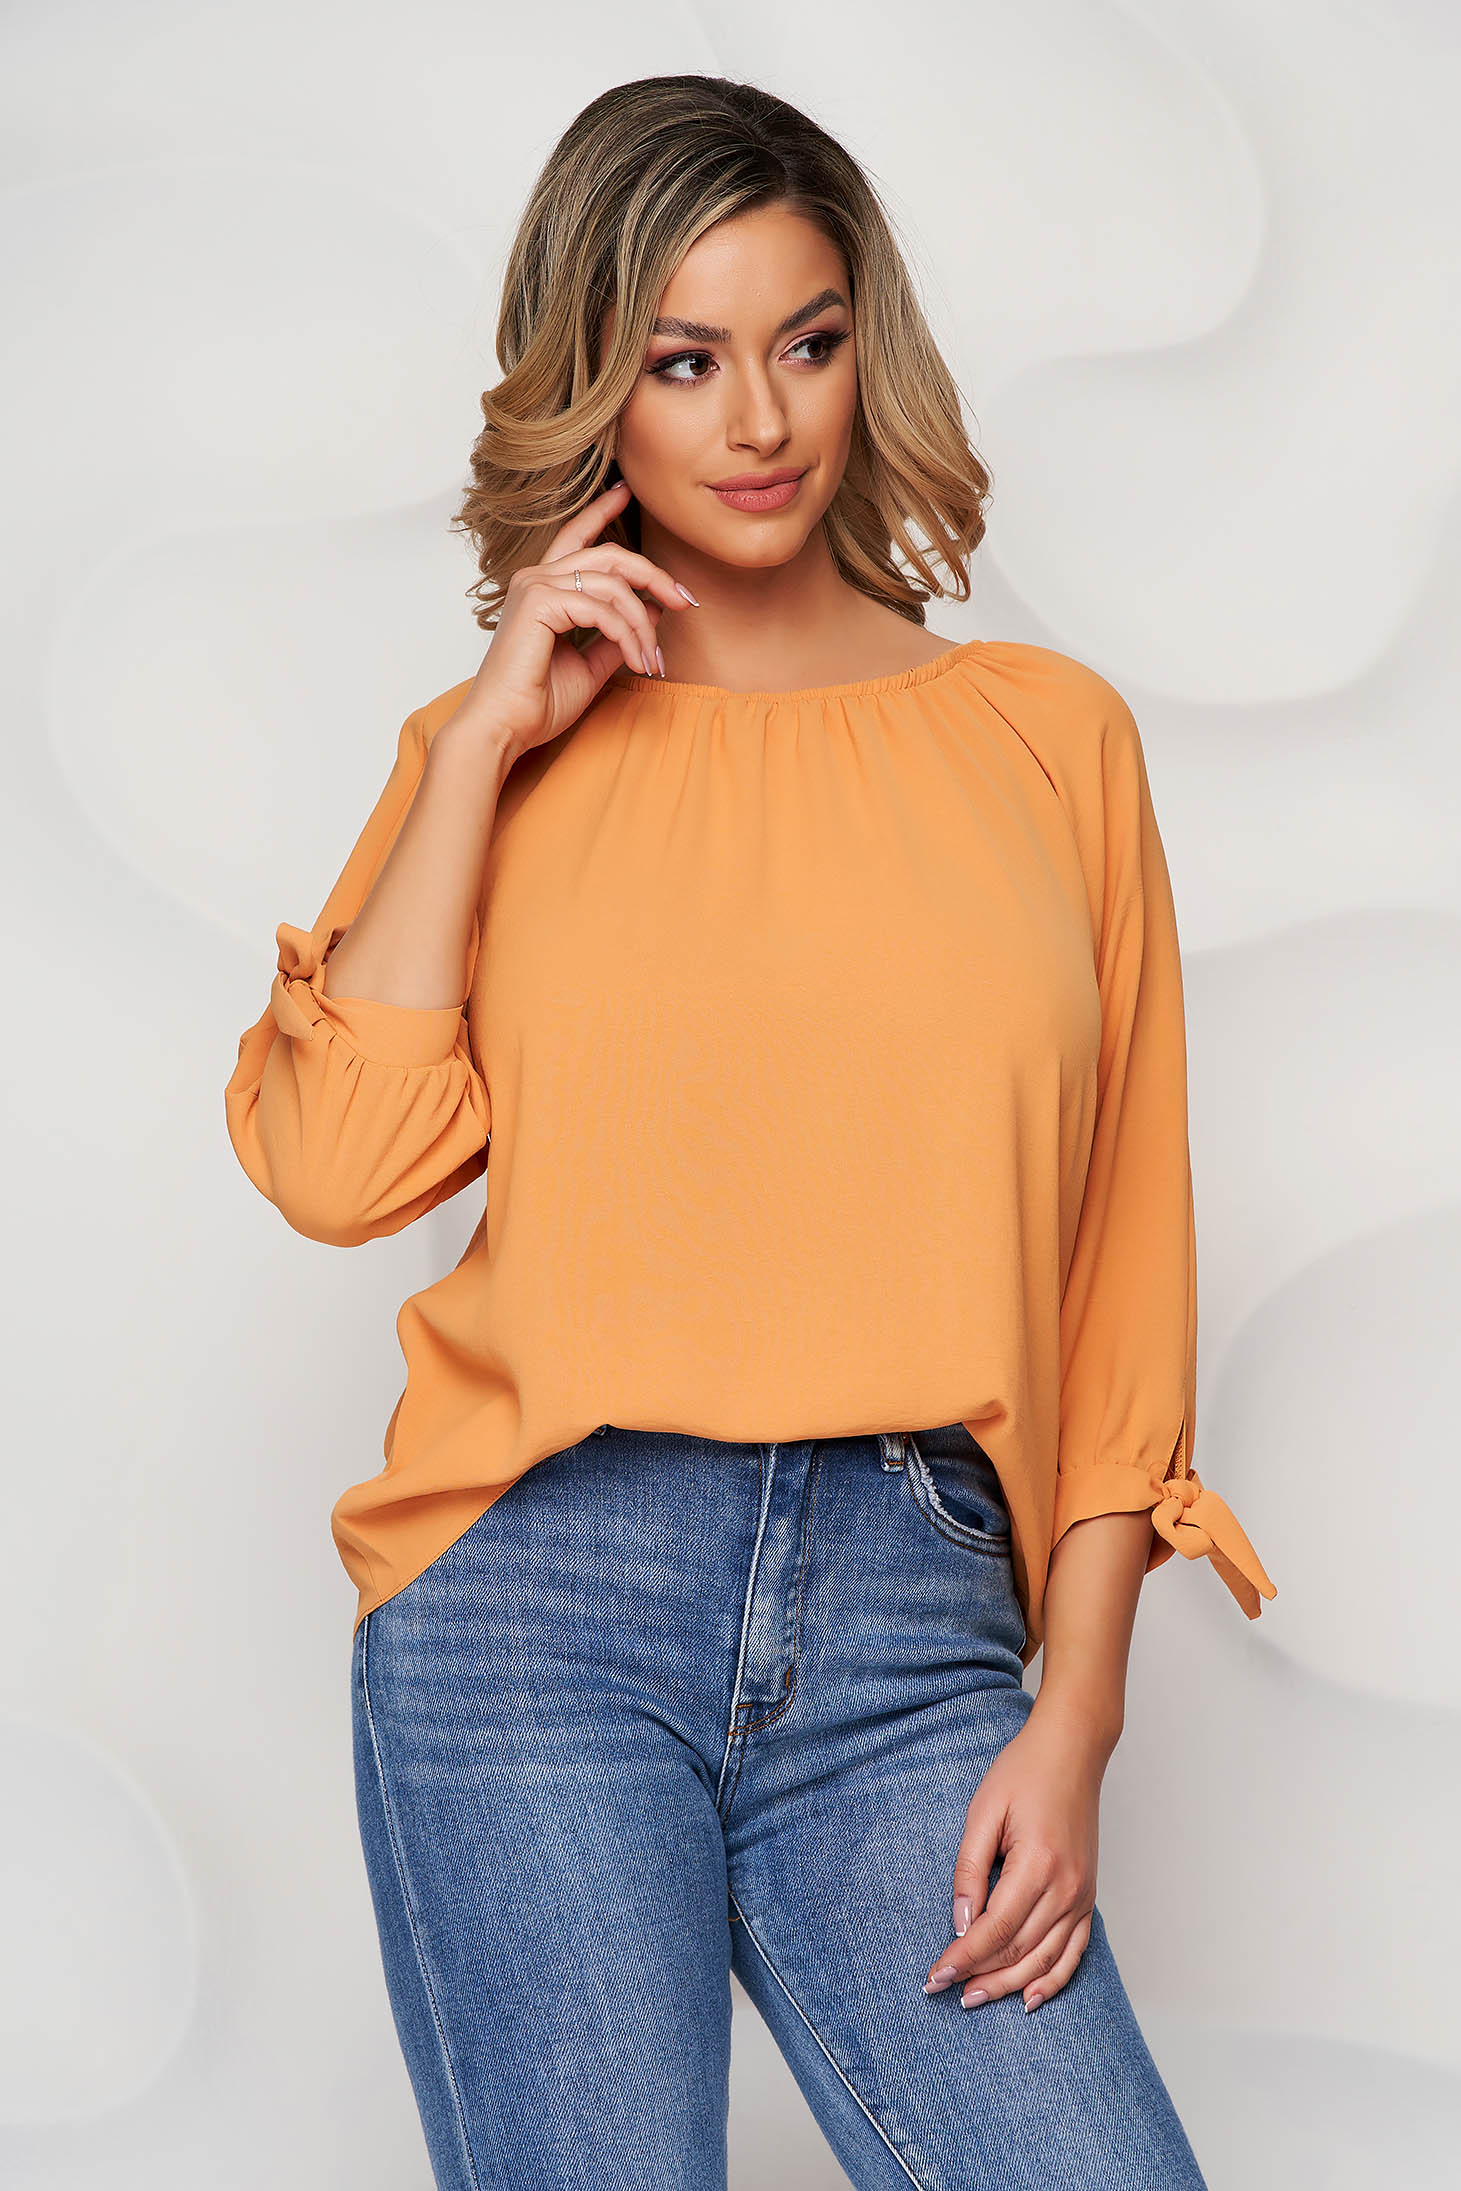 Women`s blouse mustard on the shoulders slightly transparent fabric with bow accessories